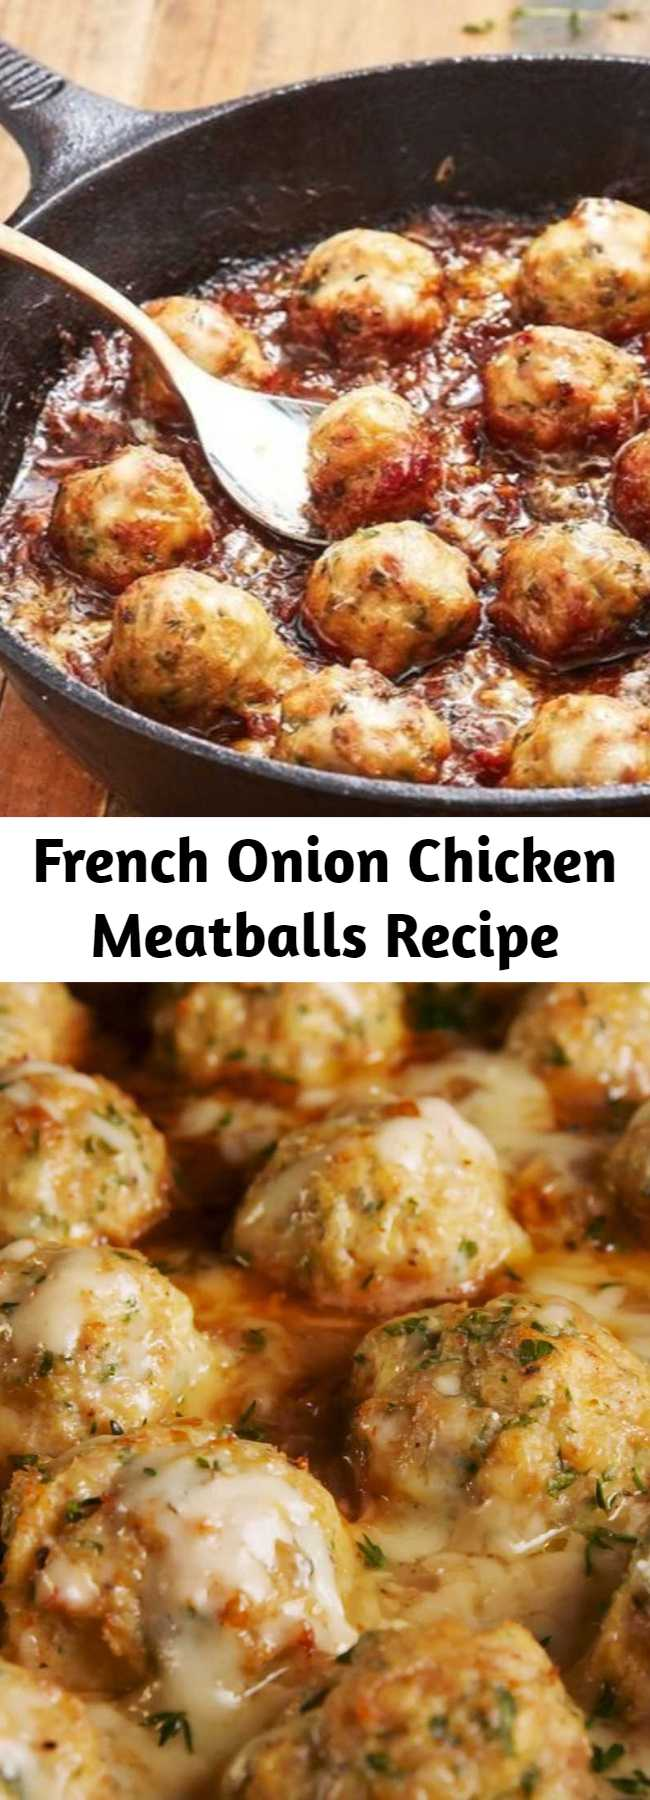 French Onion Chicken Meatballs Recipe - We think everything can be improved by adding meatballs to it. Even French onion soup. It turns an appetizer soup into a full meal, and don't worry, we added even more cheese to it. Gruyère goes into the meatballs and then the whole thing gets topped with more of it before serving. And of course, there's plenty of caramelized onions. #easy #recipe #chickenrecipes #dinnerrecipes #lowcarb #keto #frenchonion #chickenmeatballs #meatballs